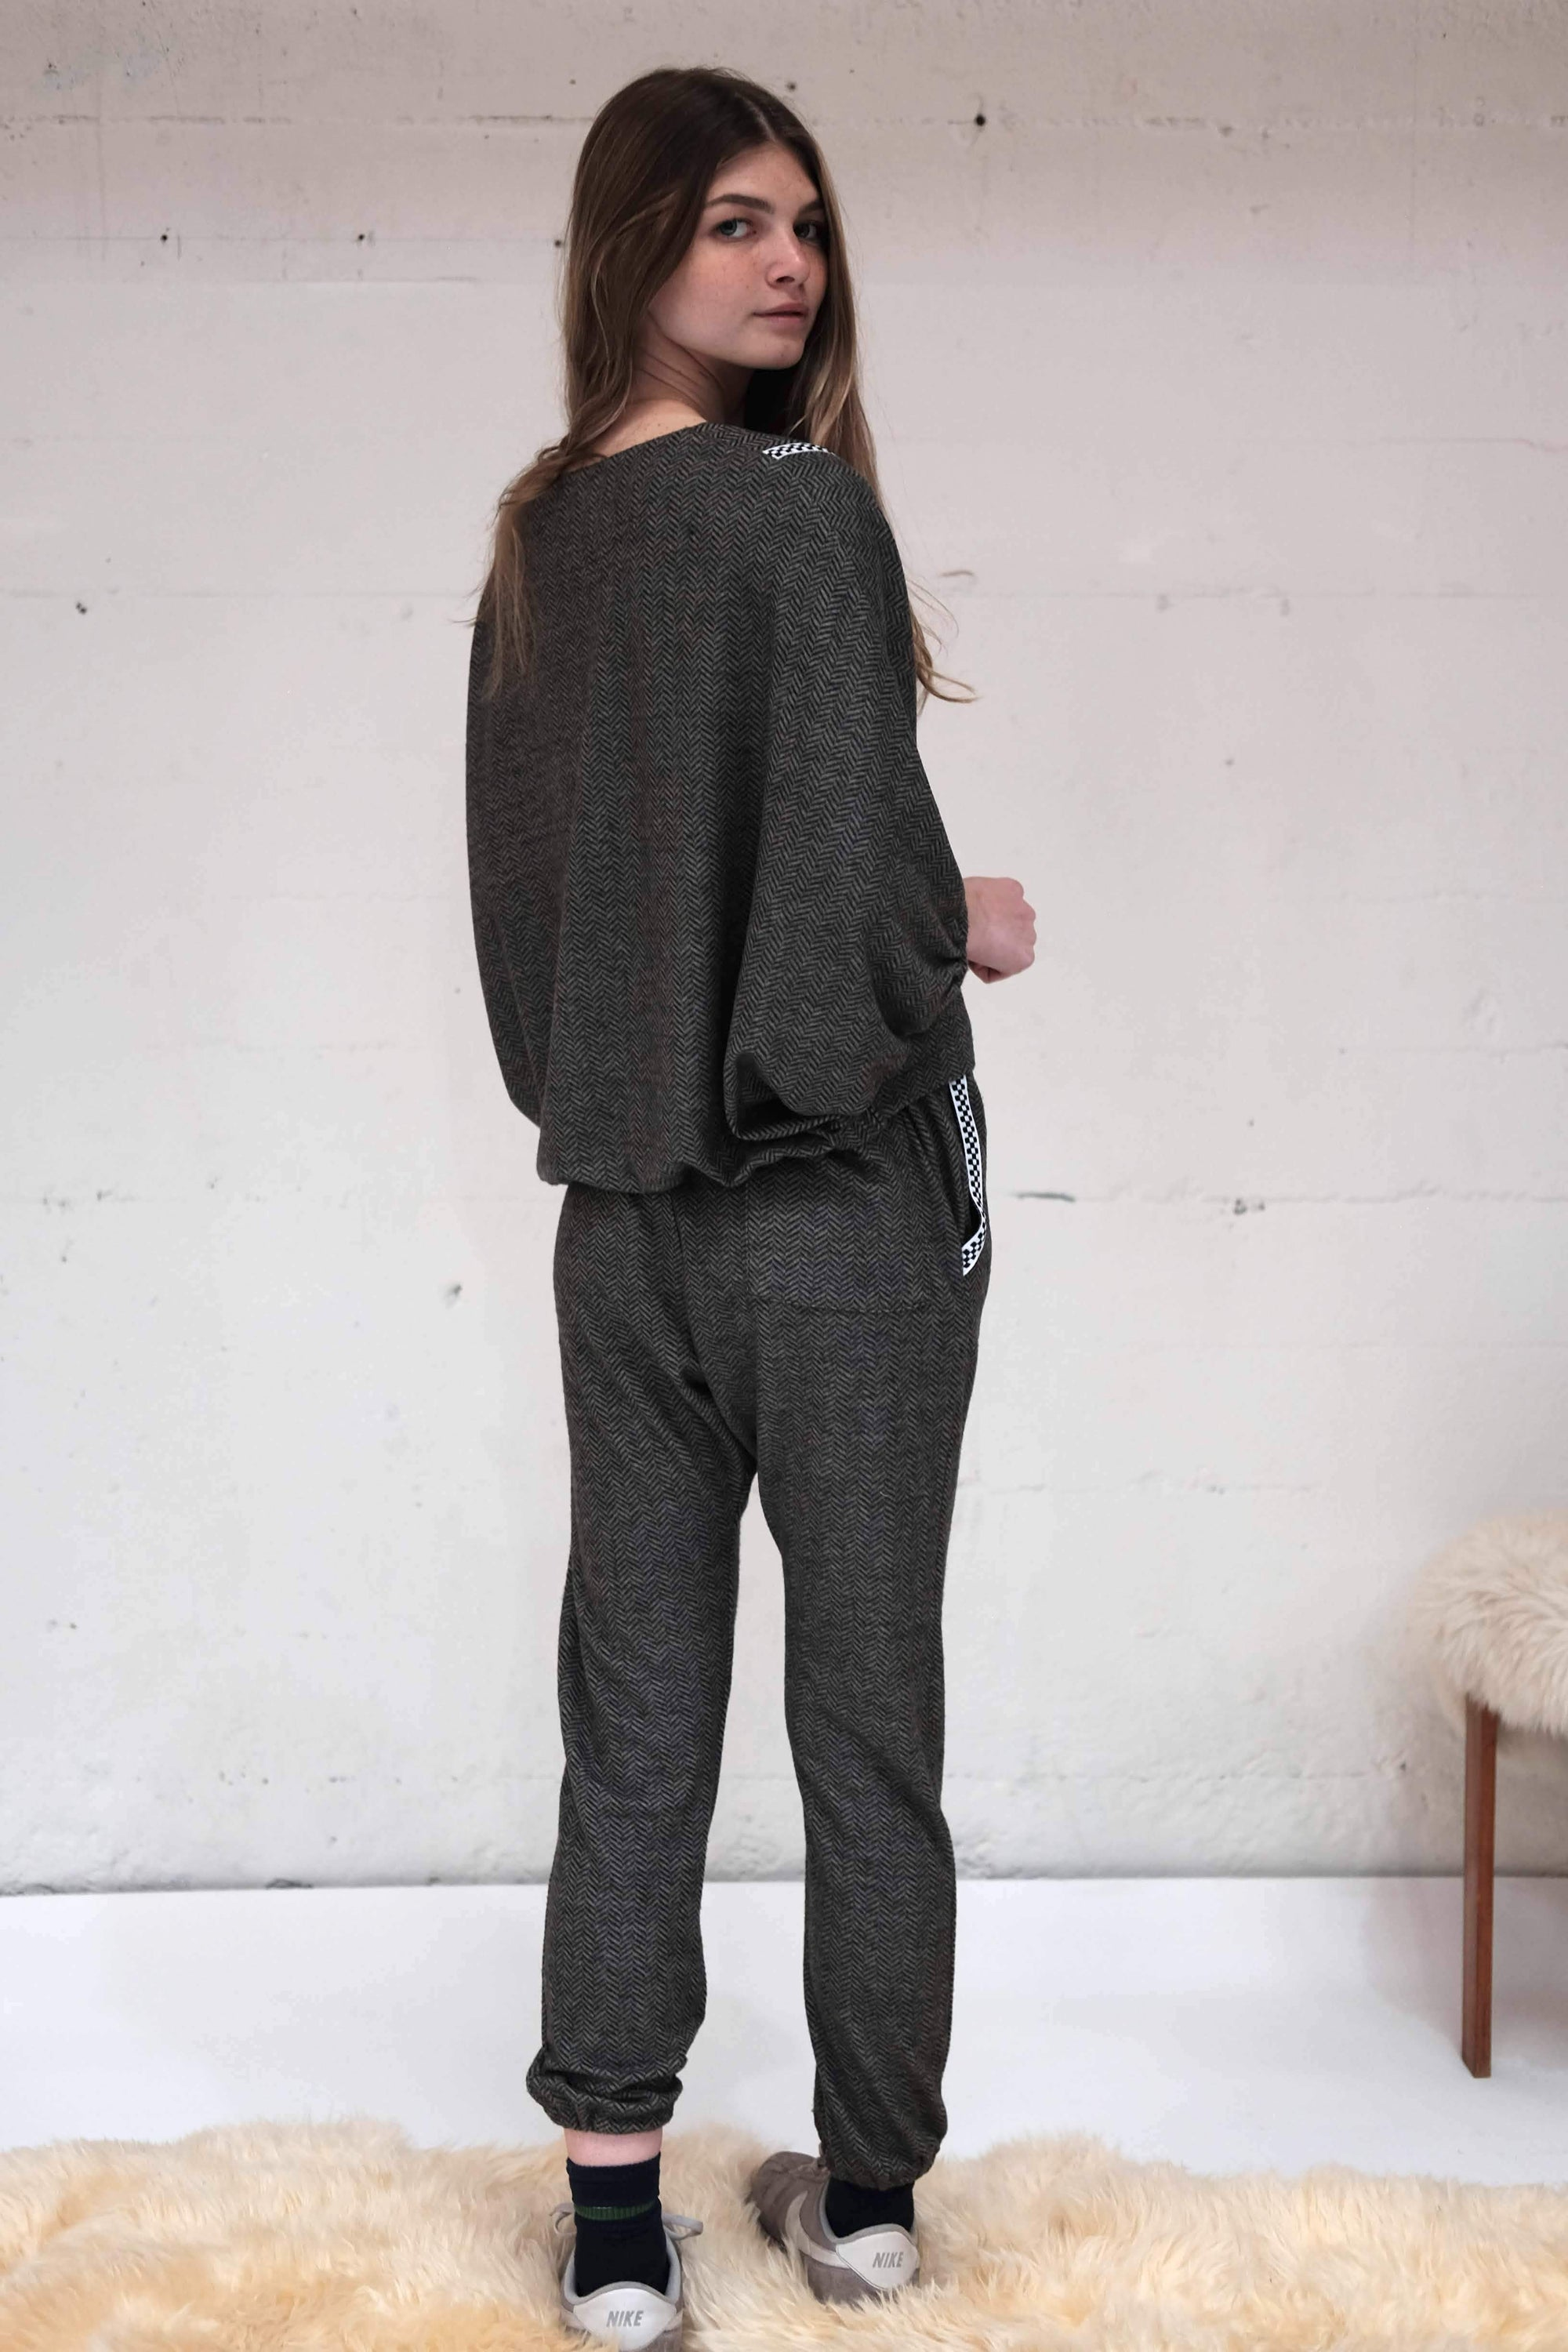 Sumac Sweatpant - herringbone chevron,, The Uplifters- Woo